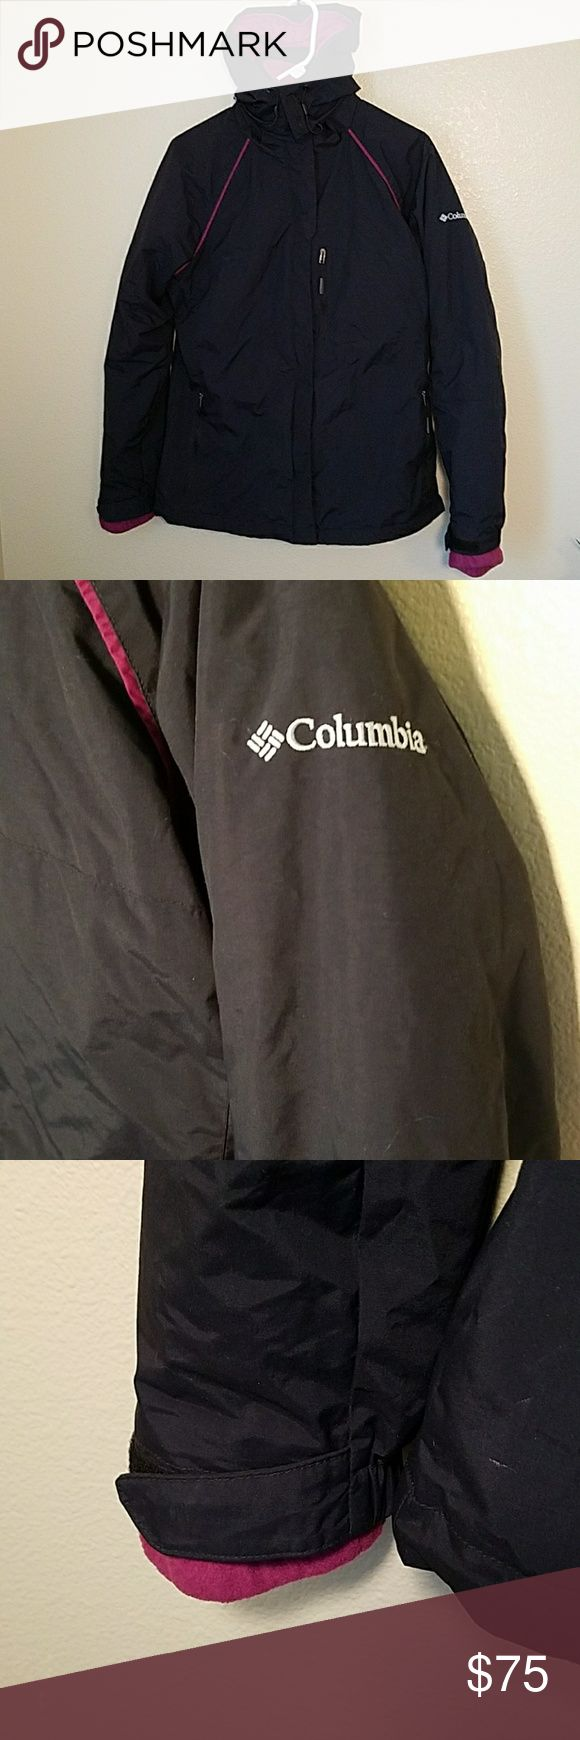 Columbia black and magenta ski coat interchange m This Columbia jacket is in excellent condition. It is a two in one ski coat. Black outer shell is fully lined with magenta color. Two pockets for hands and one zip pocket 4 small valuables. Inner lining of fleece jacket that comes out and can be a stand-in loan Columbia fleece. Beautiful color. Hood is fully removable from coat. Size medium. Columbia Jackets & Coats